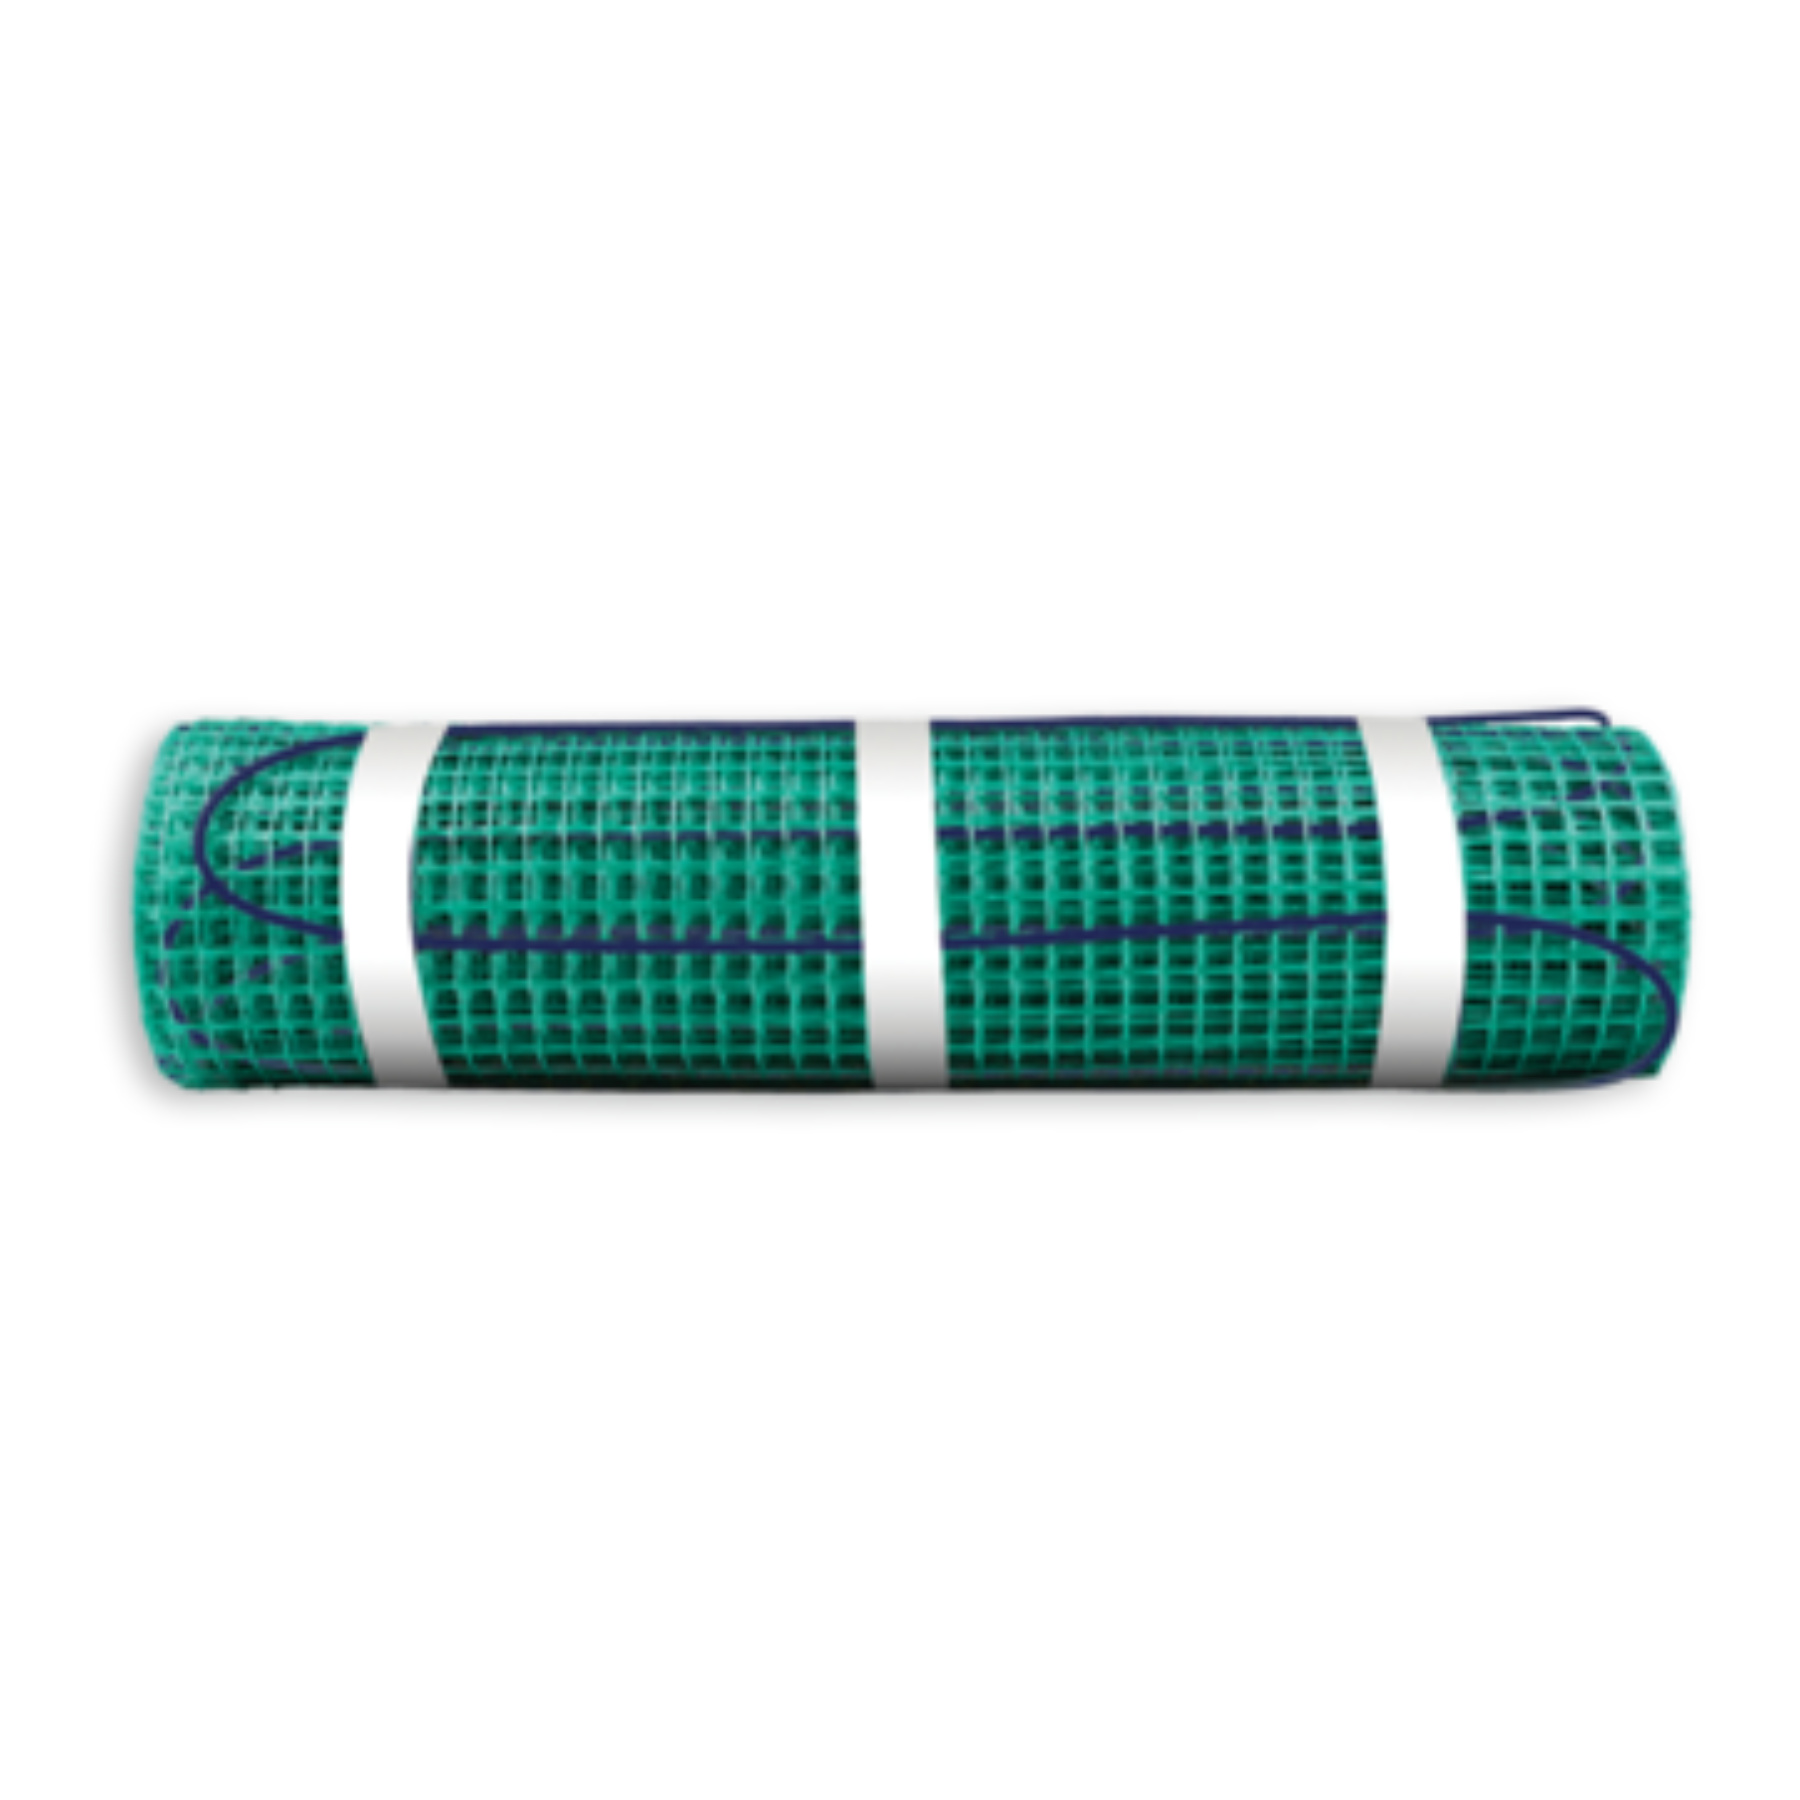 WarmlyYours Tempzone Bench Shower Mat 120V 1.3' X 2.7', 3.6 sq.ft.